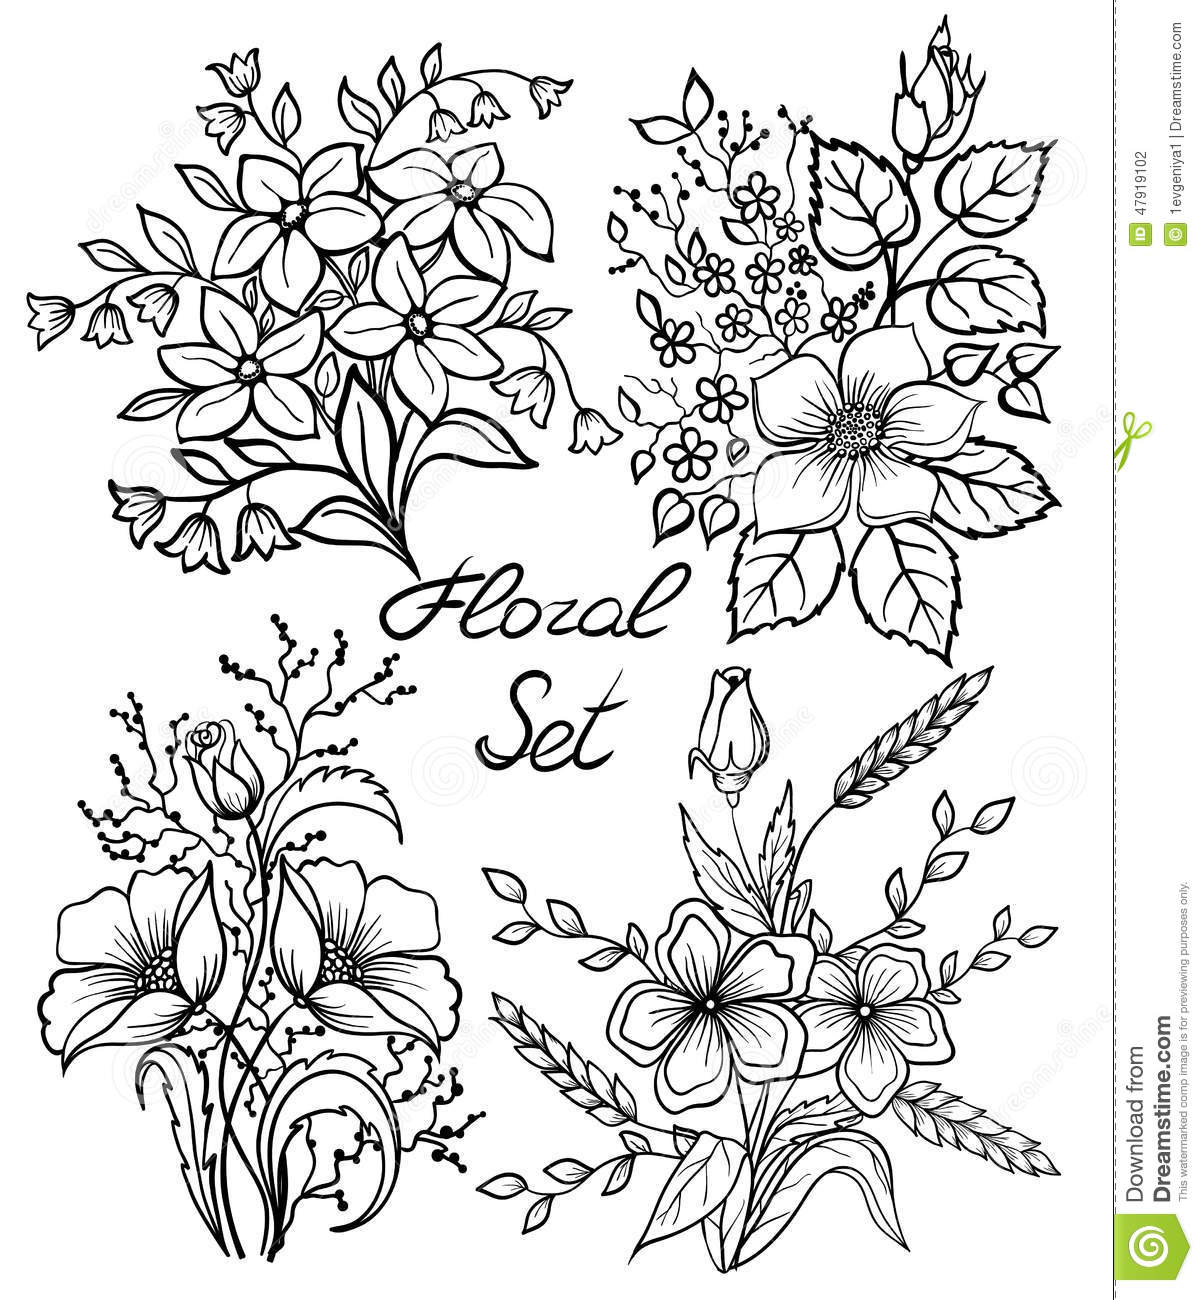 Vintage Flowers Drawing At Getdrawings Free For Personal Use